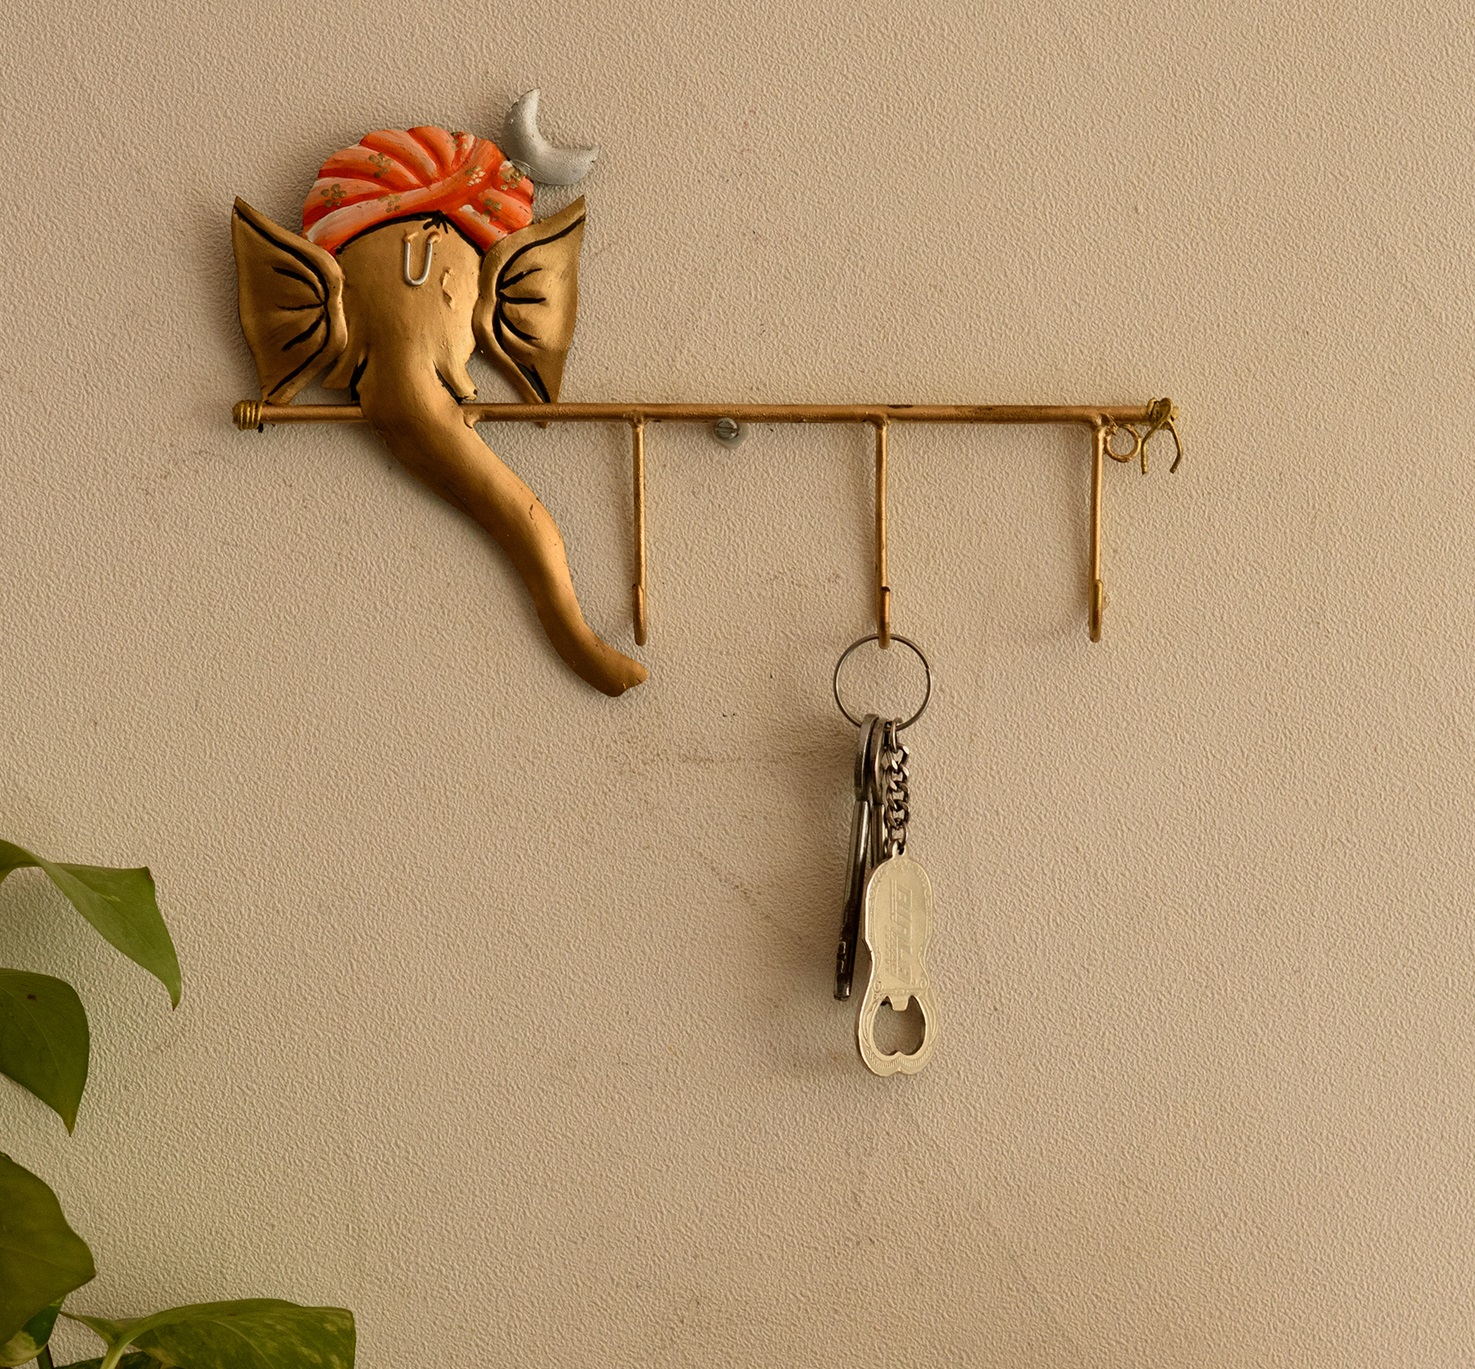 Wrought Iron Lord Ganesha Key Holder Indian Home Decor